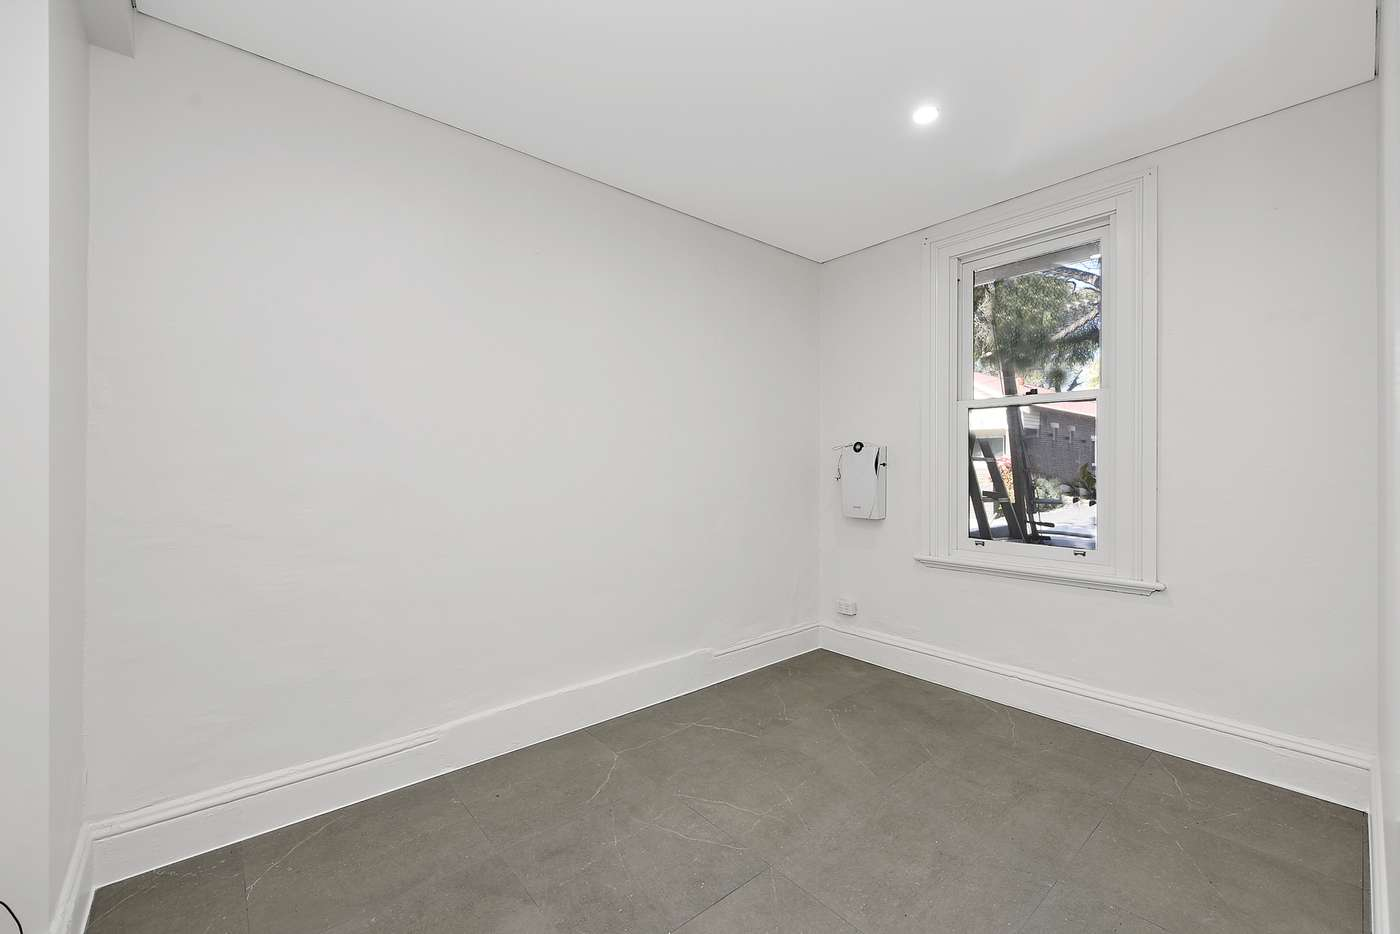 Sixth view of Homely house listing, 5 St Peters Street, St Peters NSW 2044